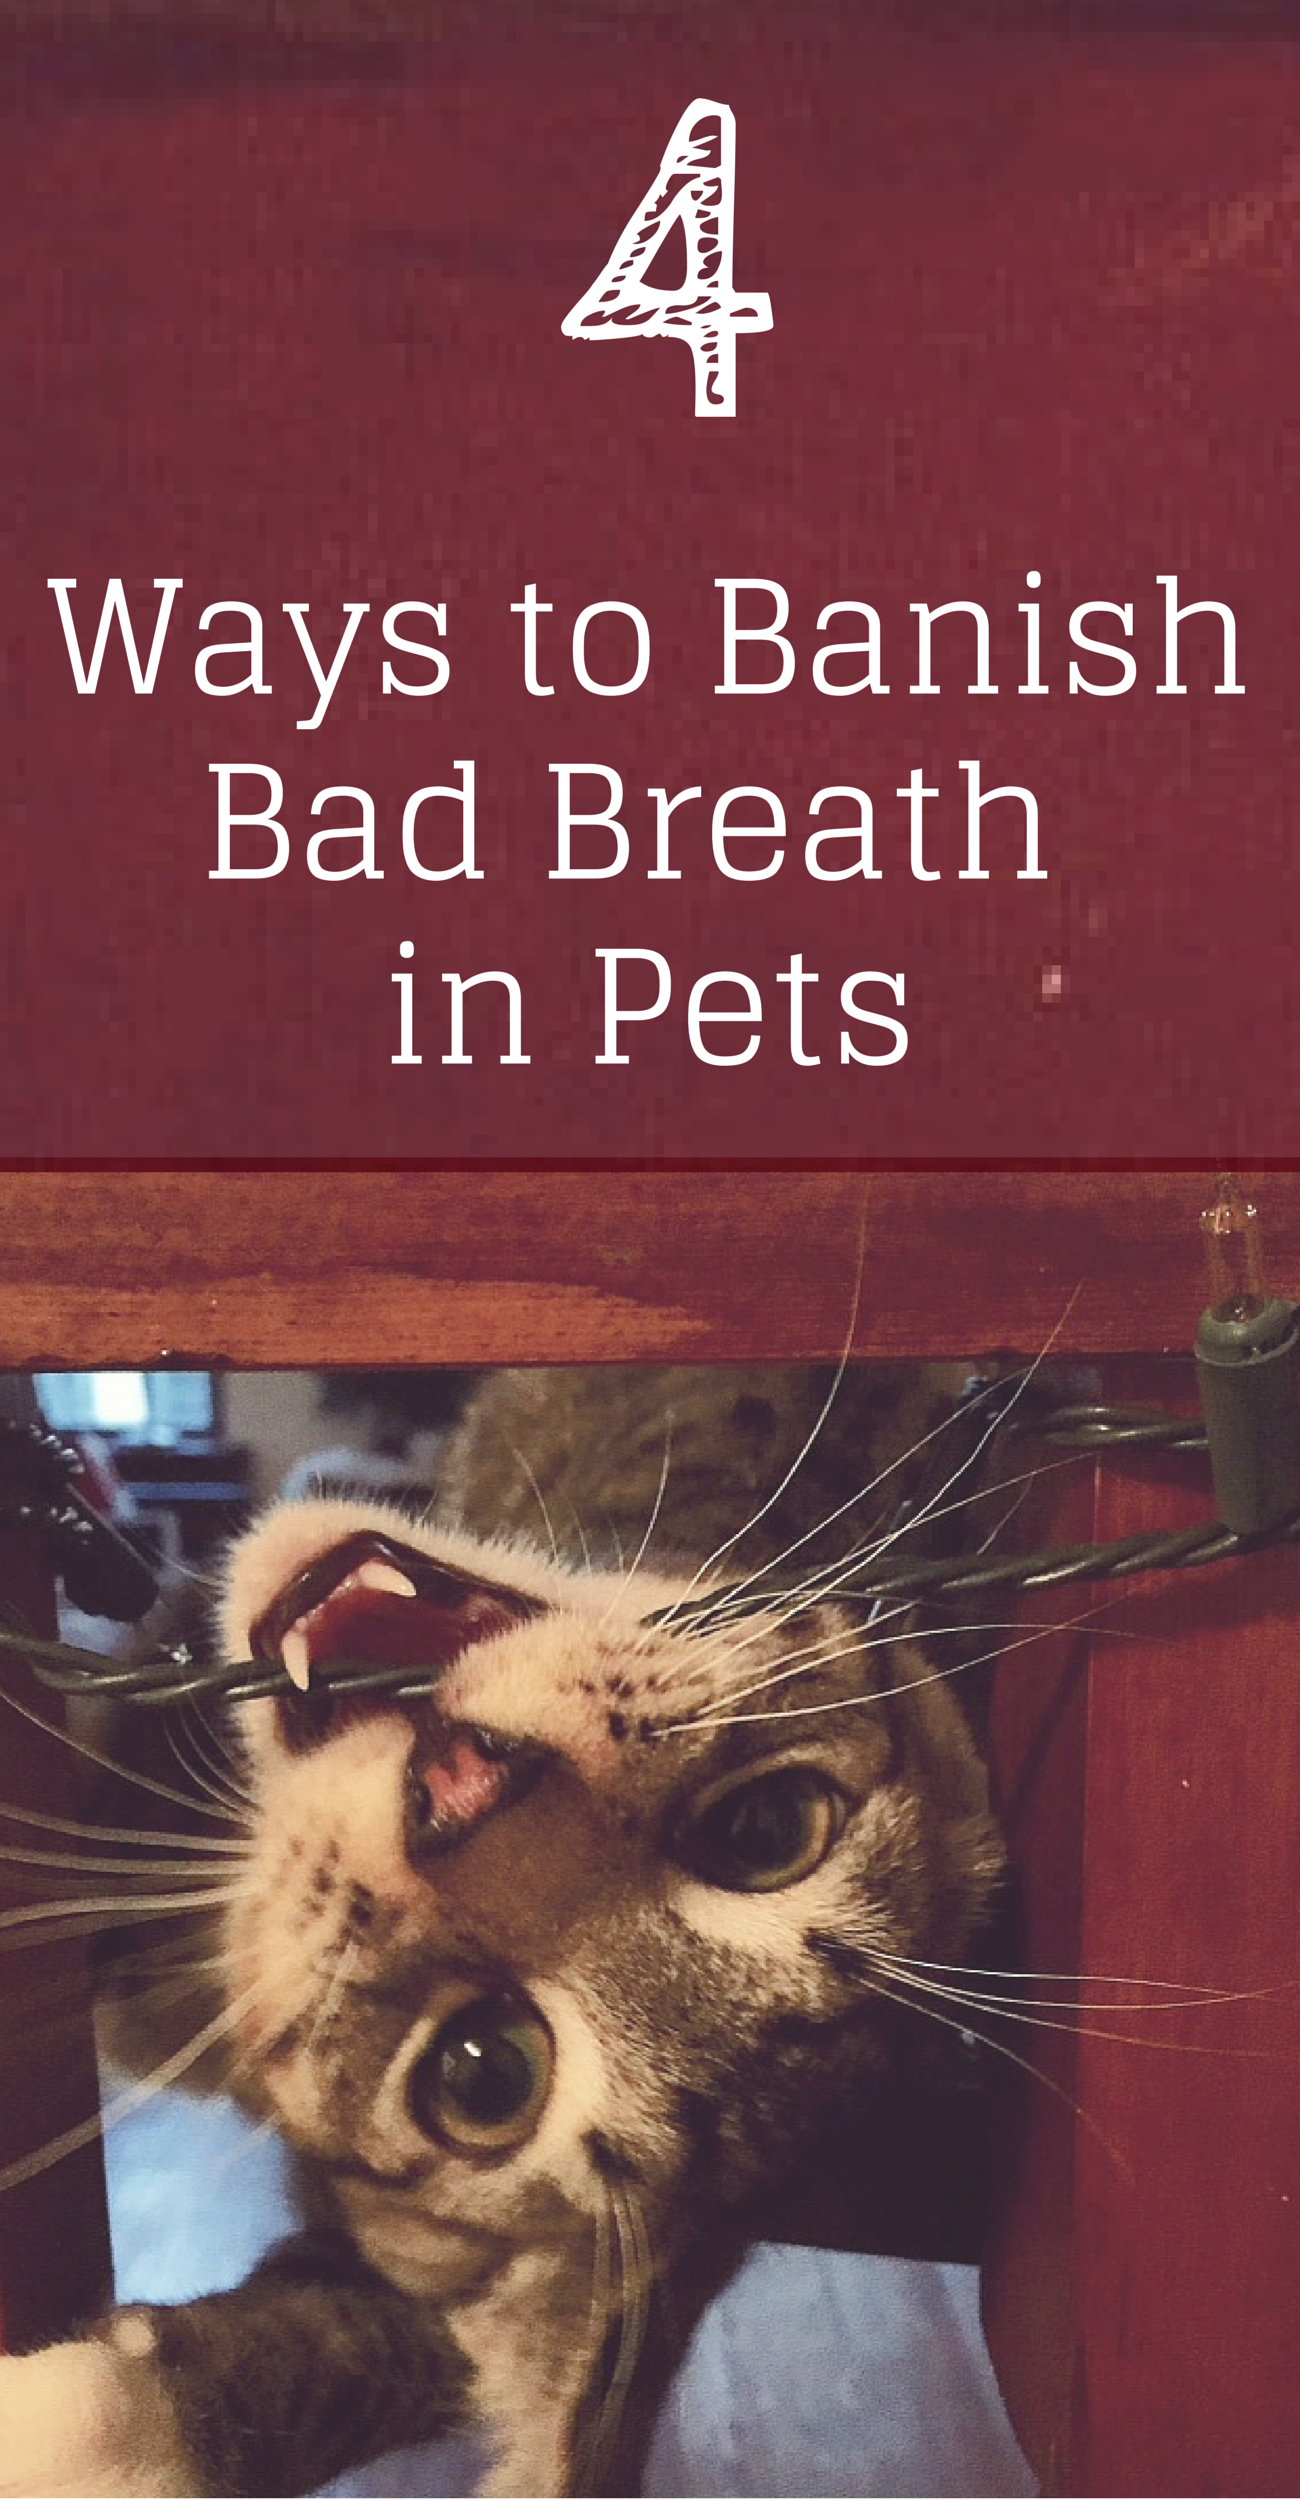 4 Ways To Banish Bad Breath In Pets With Images Cat Bad Breath Cat Breath Bad Cats